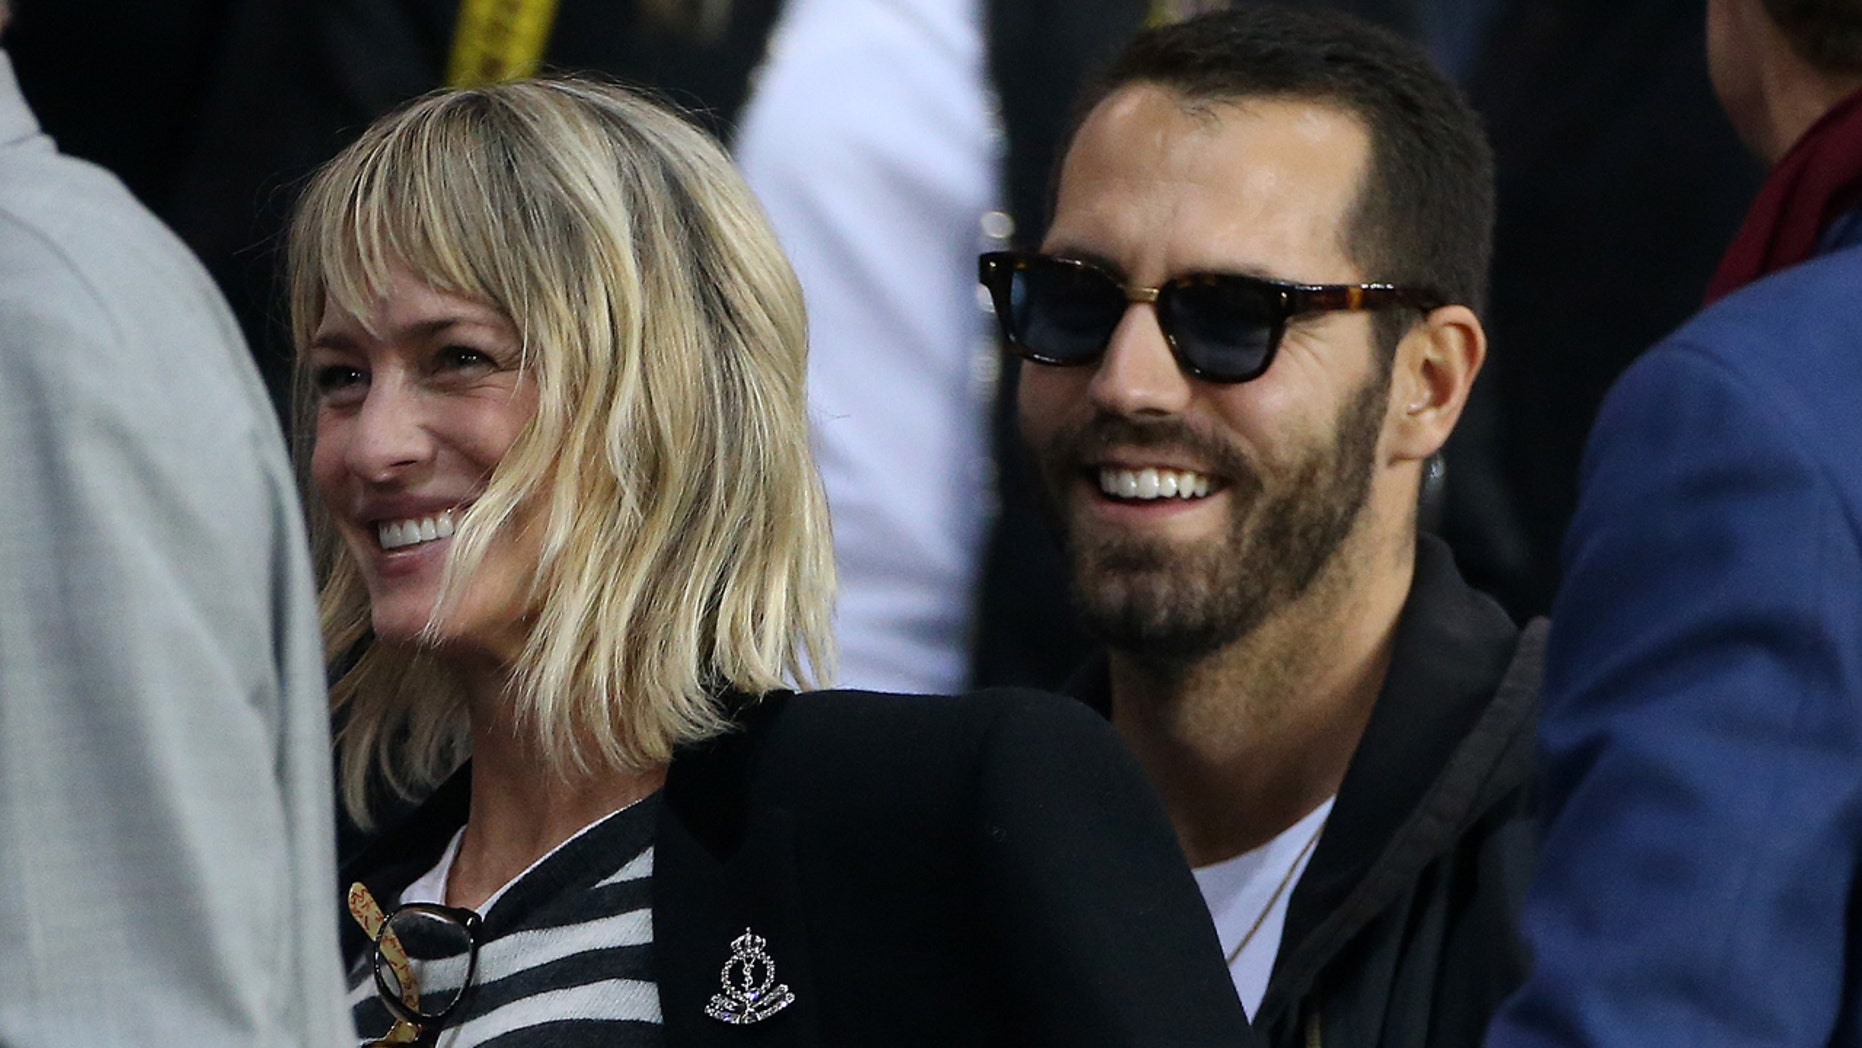 Robin Wright was spotted out in Tahoe with rumored new boyfriend, Clement Giraudet. Here Wright attends the UEFA Champions League match with Giraudet at Parc des Princes in Paris, September 2017.